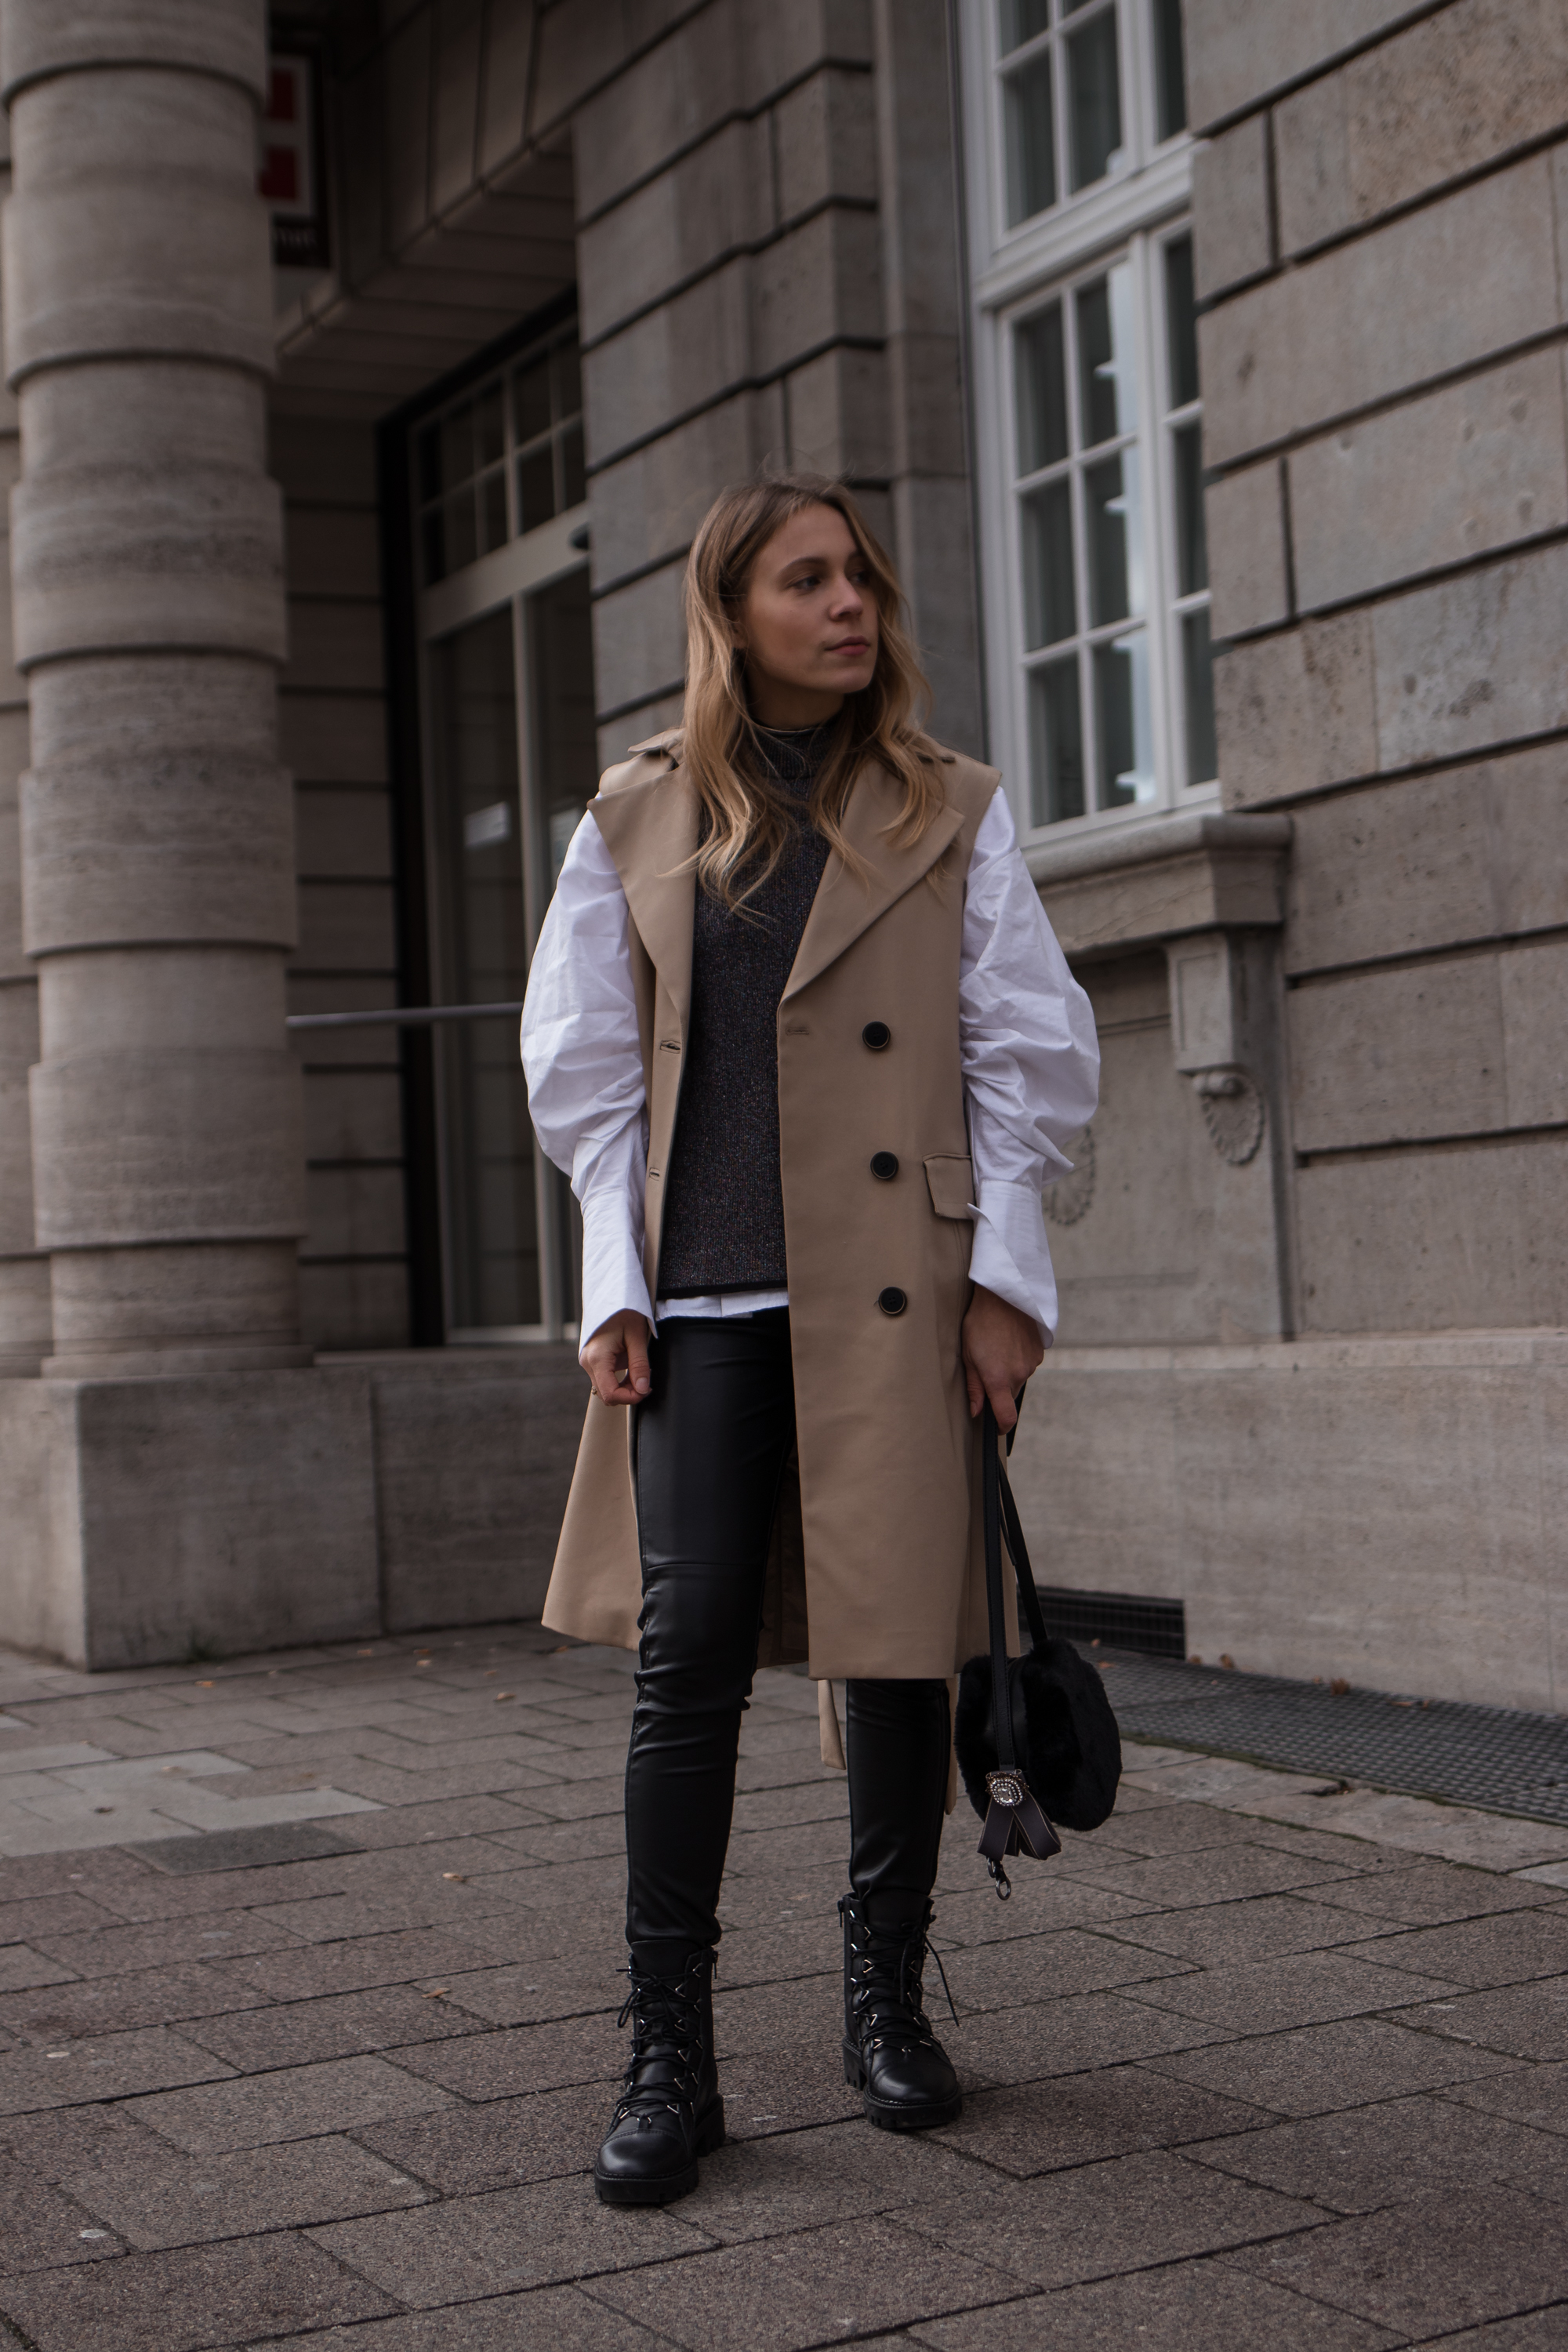 Puffy Sleeved Blouse Trench Vest Casual Chic Christmas Look Leather Pants Boots Puffärmel Modeblog Heidelberg Sariety Fashionblogger_3